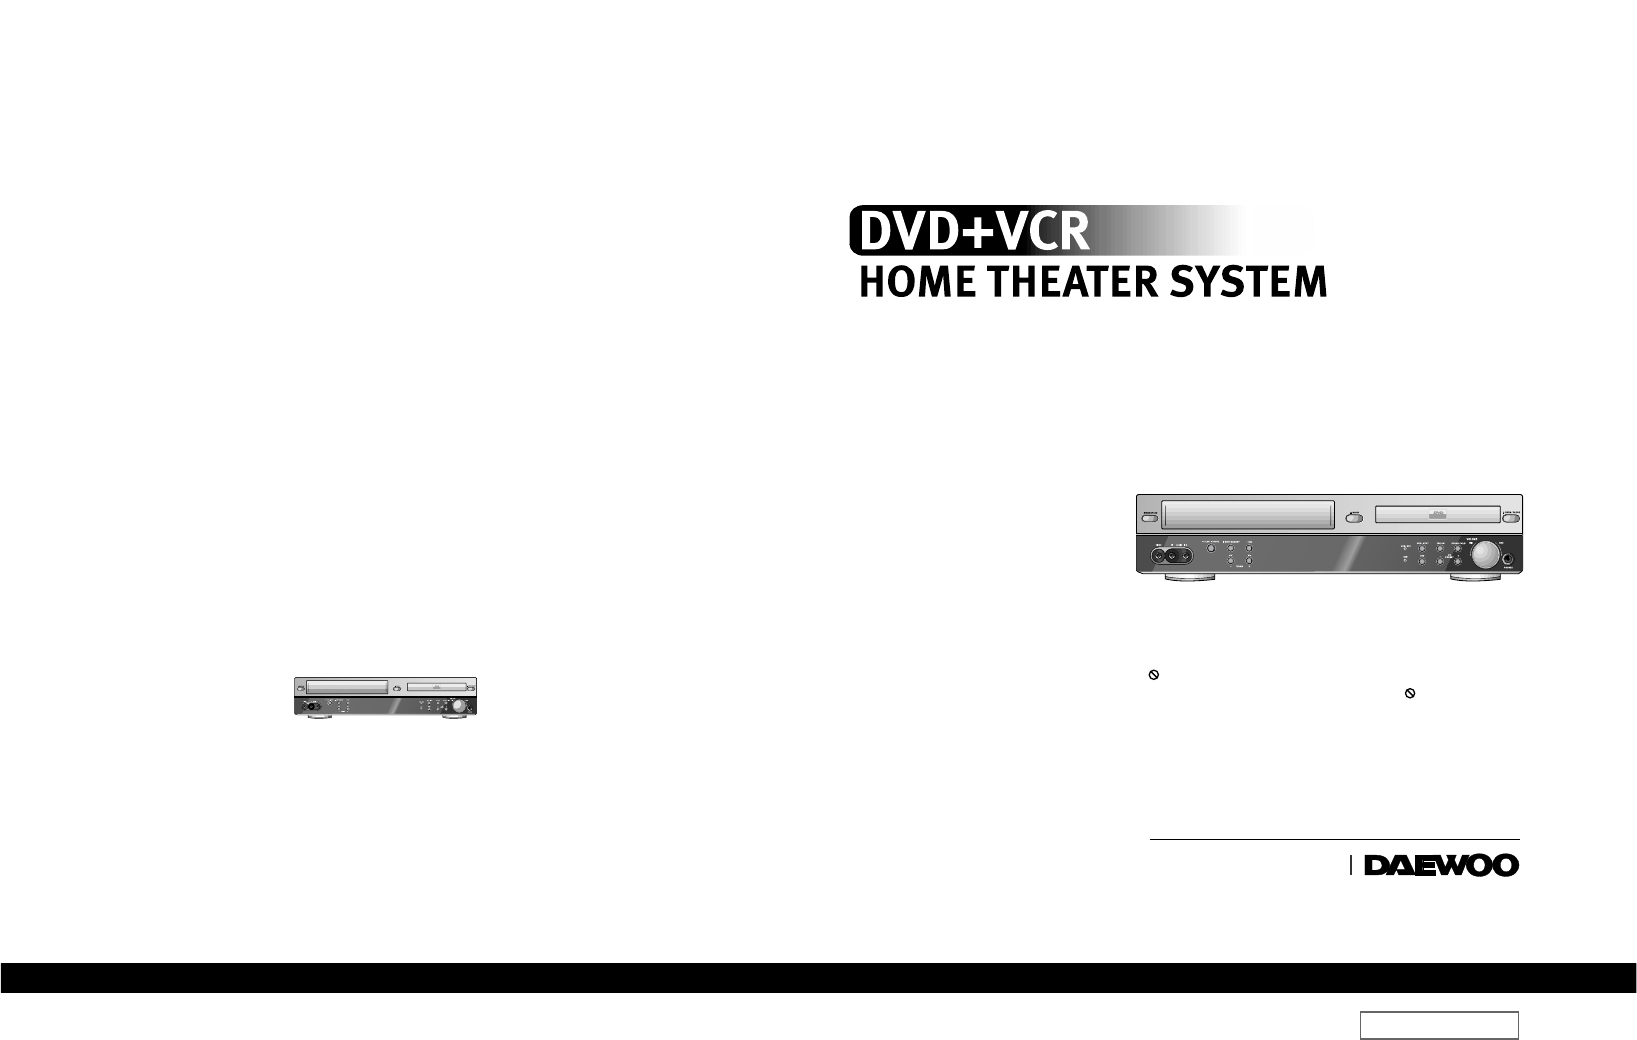 ◇Region code of DVD/Video player for home is 2 or ALL. In inserting a